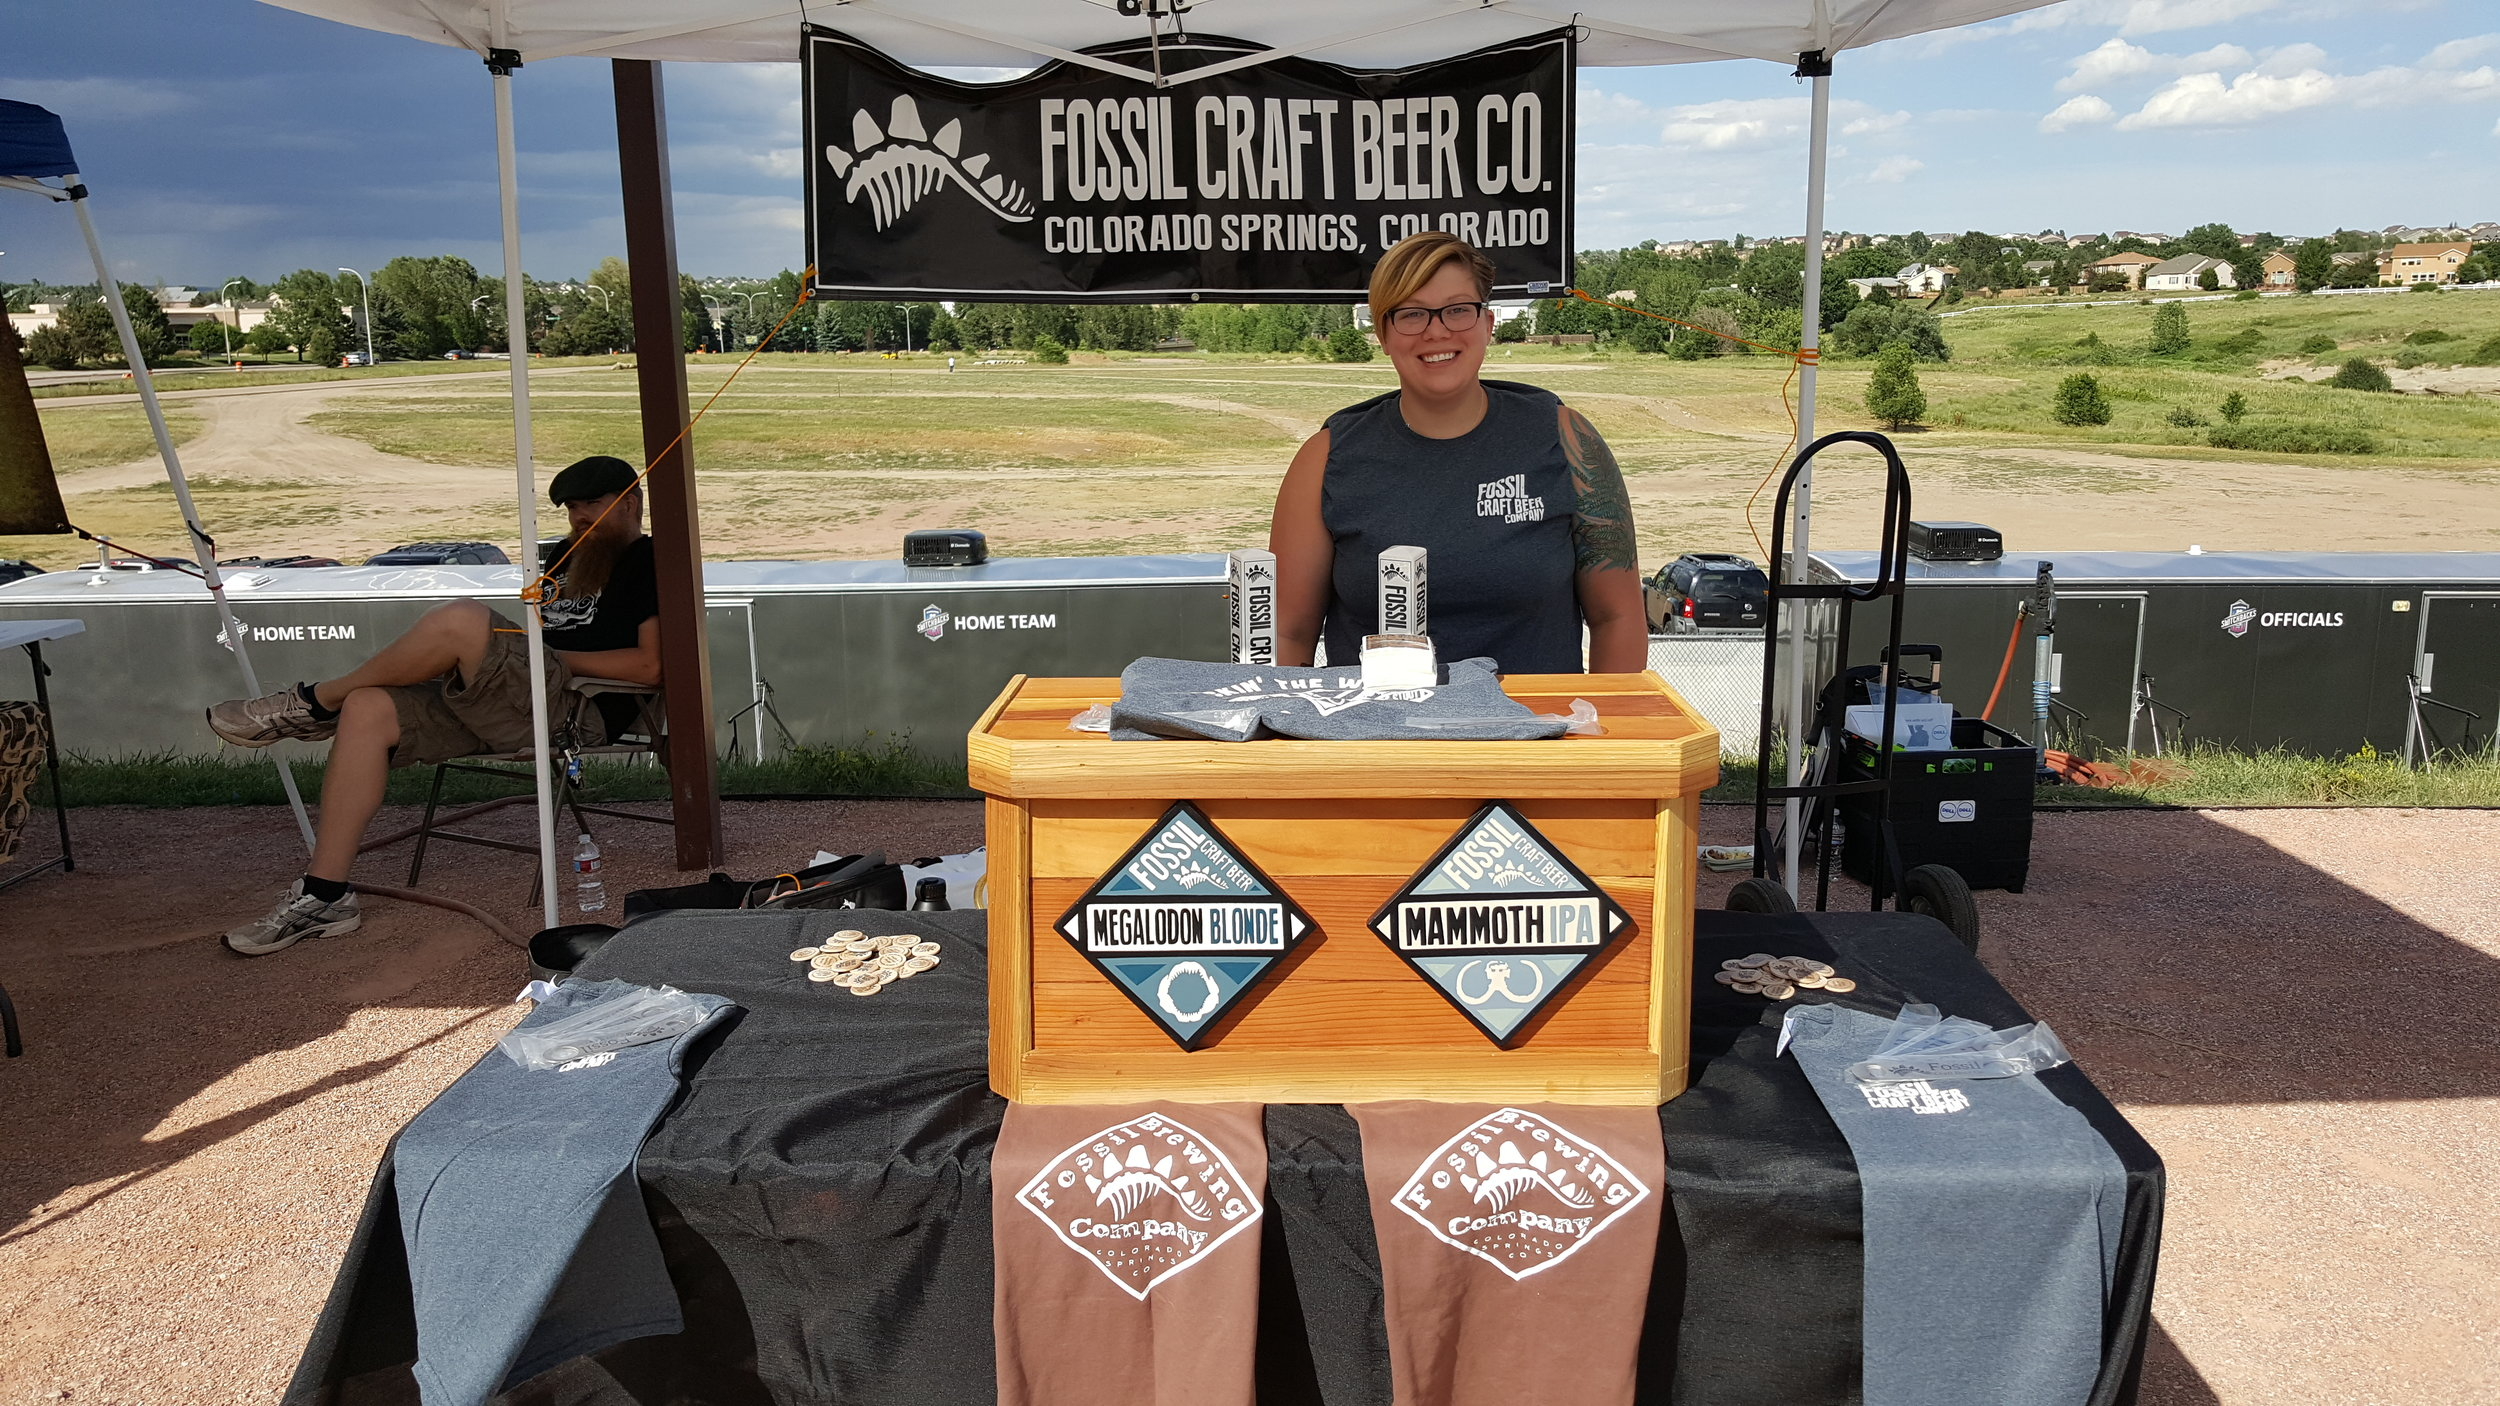 Fossil Craft Beer 719 Day booth